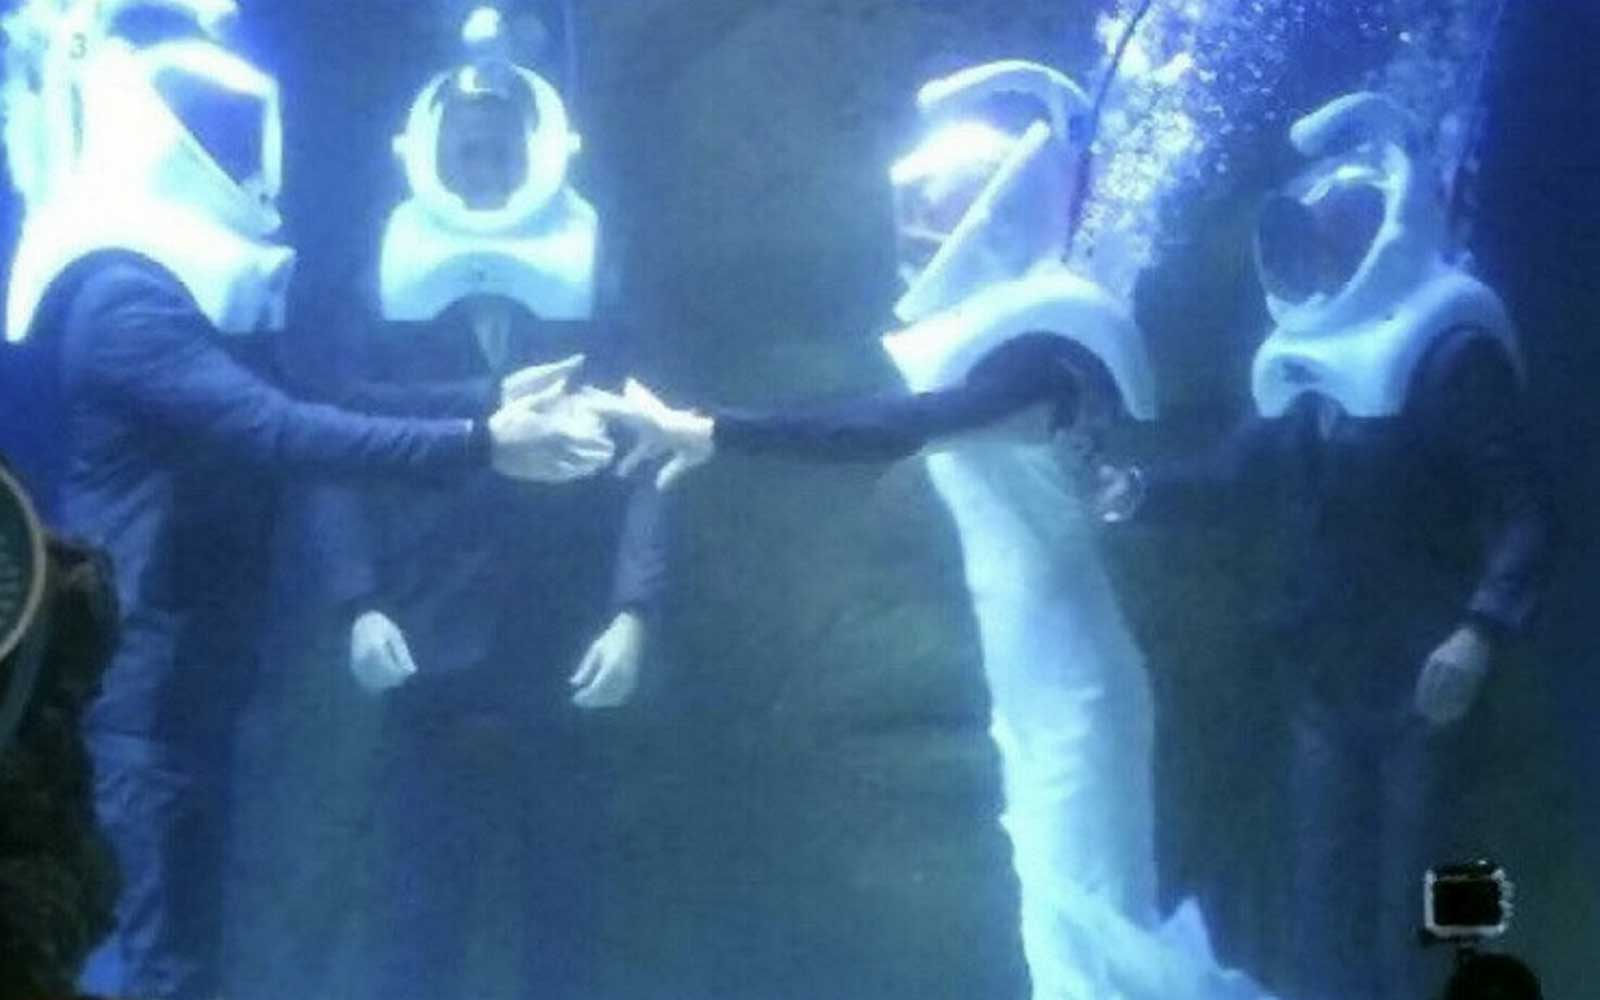 Couple Takes the Plunge by Getting Married in an Aquarium Tank